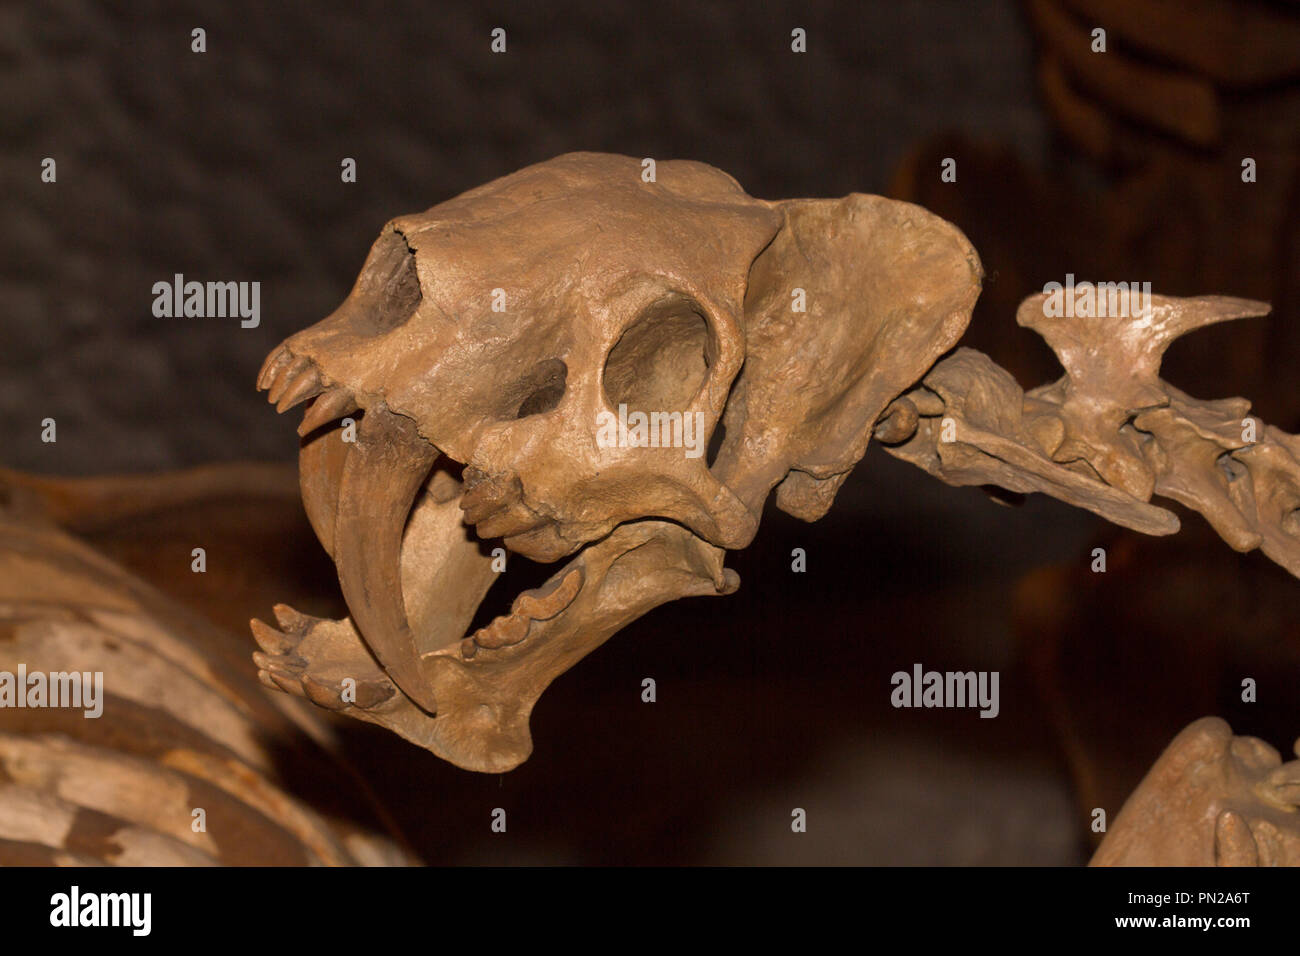 False saber-tooth, Barbourofelis loveorum, 8-9 million years old from the Miocene period, Florida - Stock Image